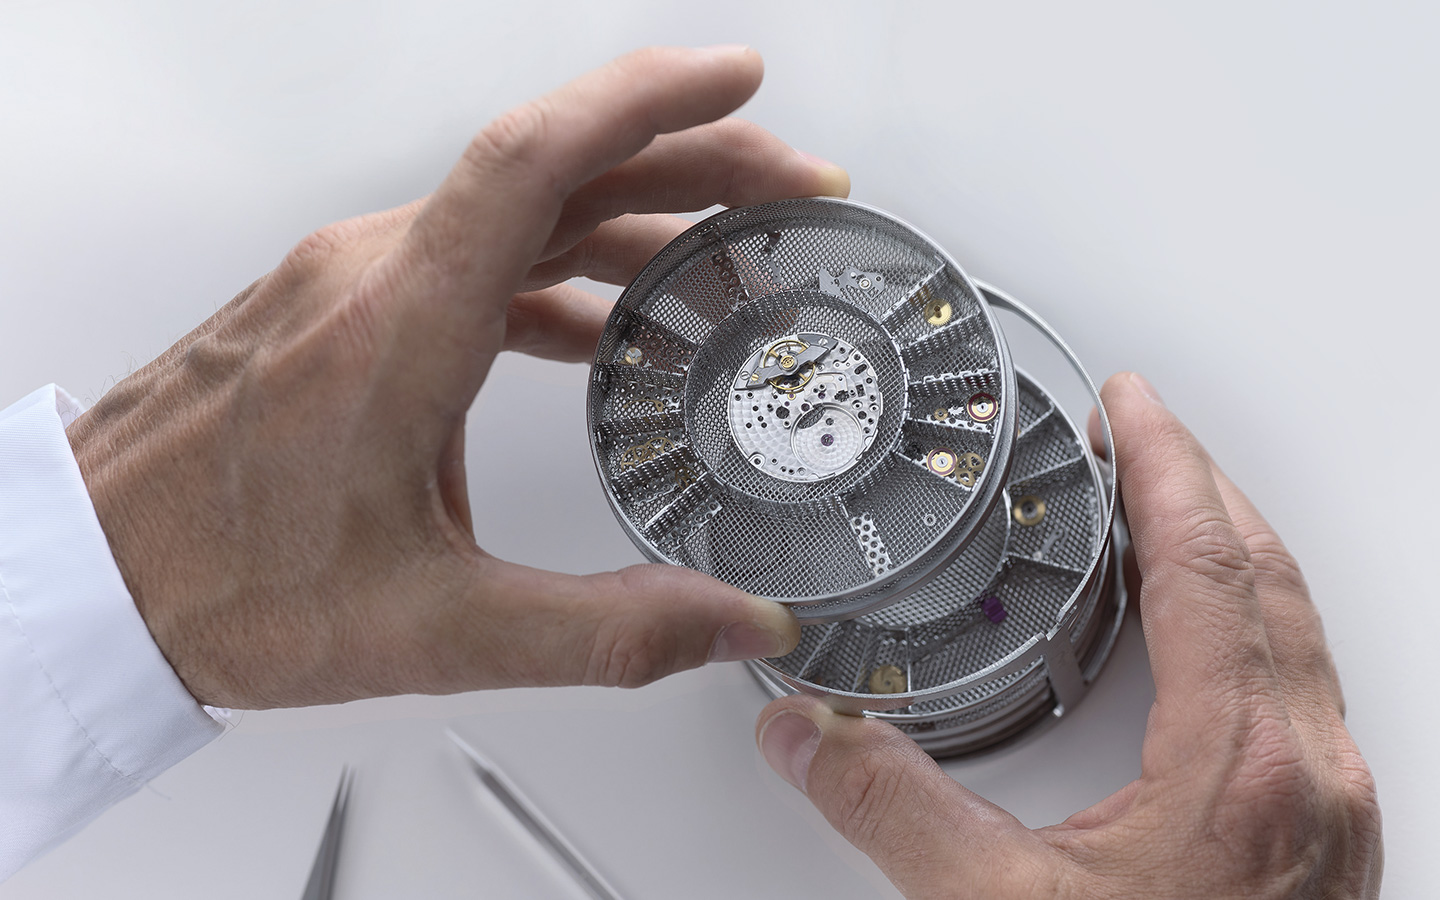 rolex-servicing-procedure-cleaning-the-movement